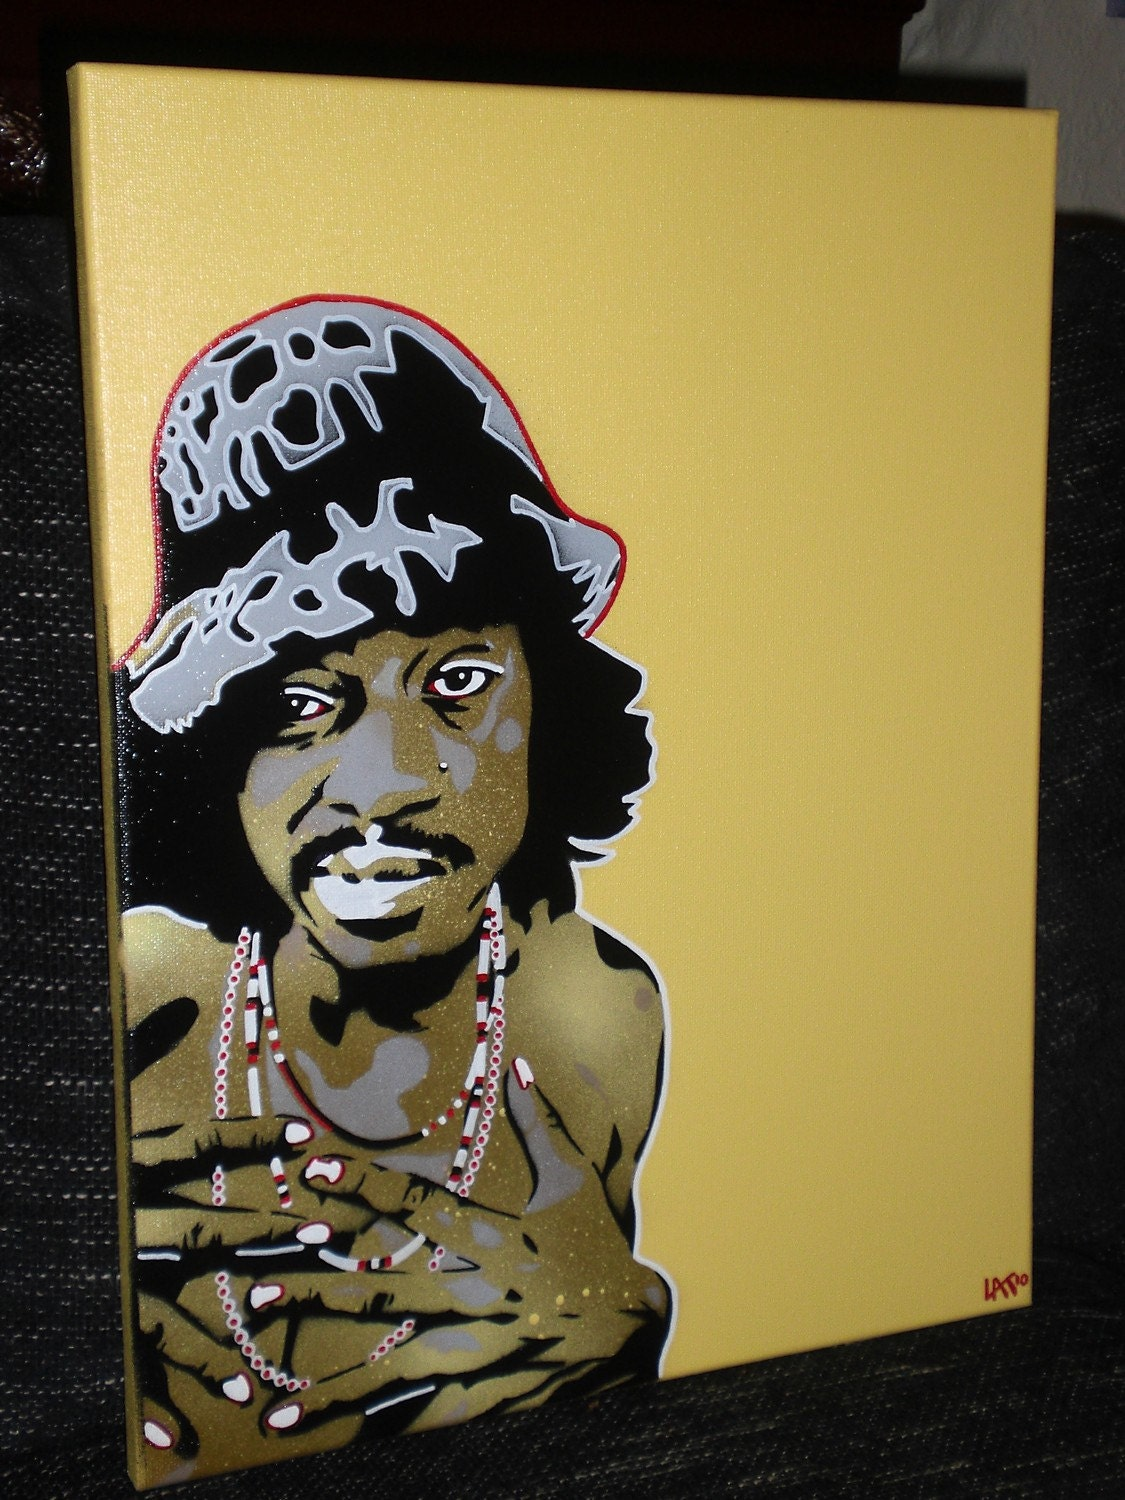 Andre 3000 painting stencil art spray paints canvas Outkast | Etsy